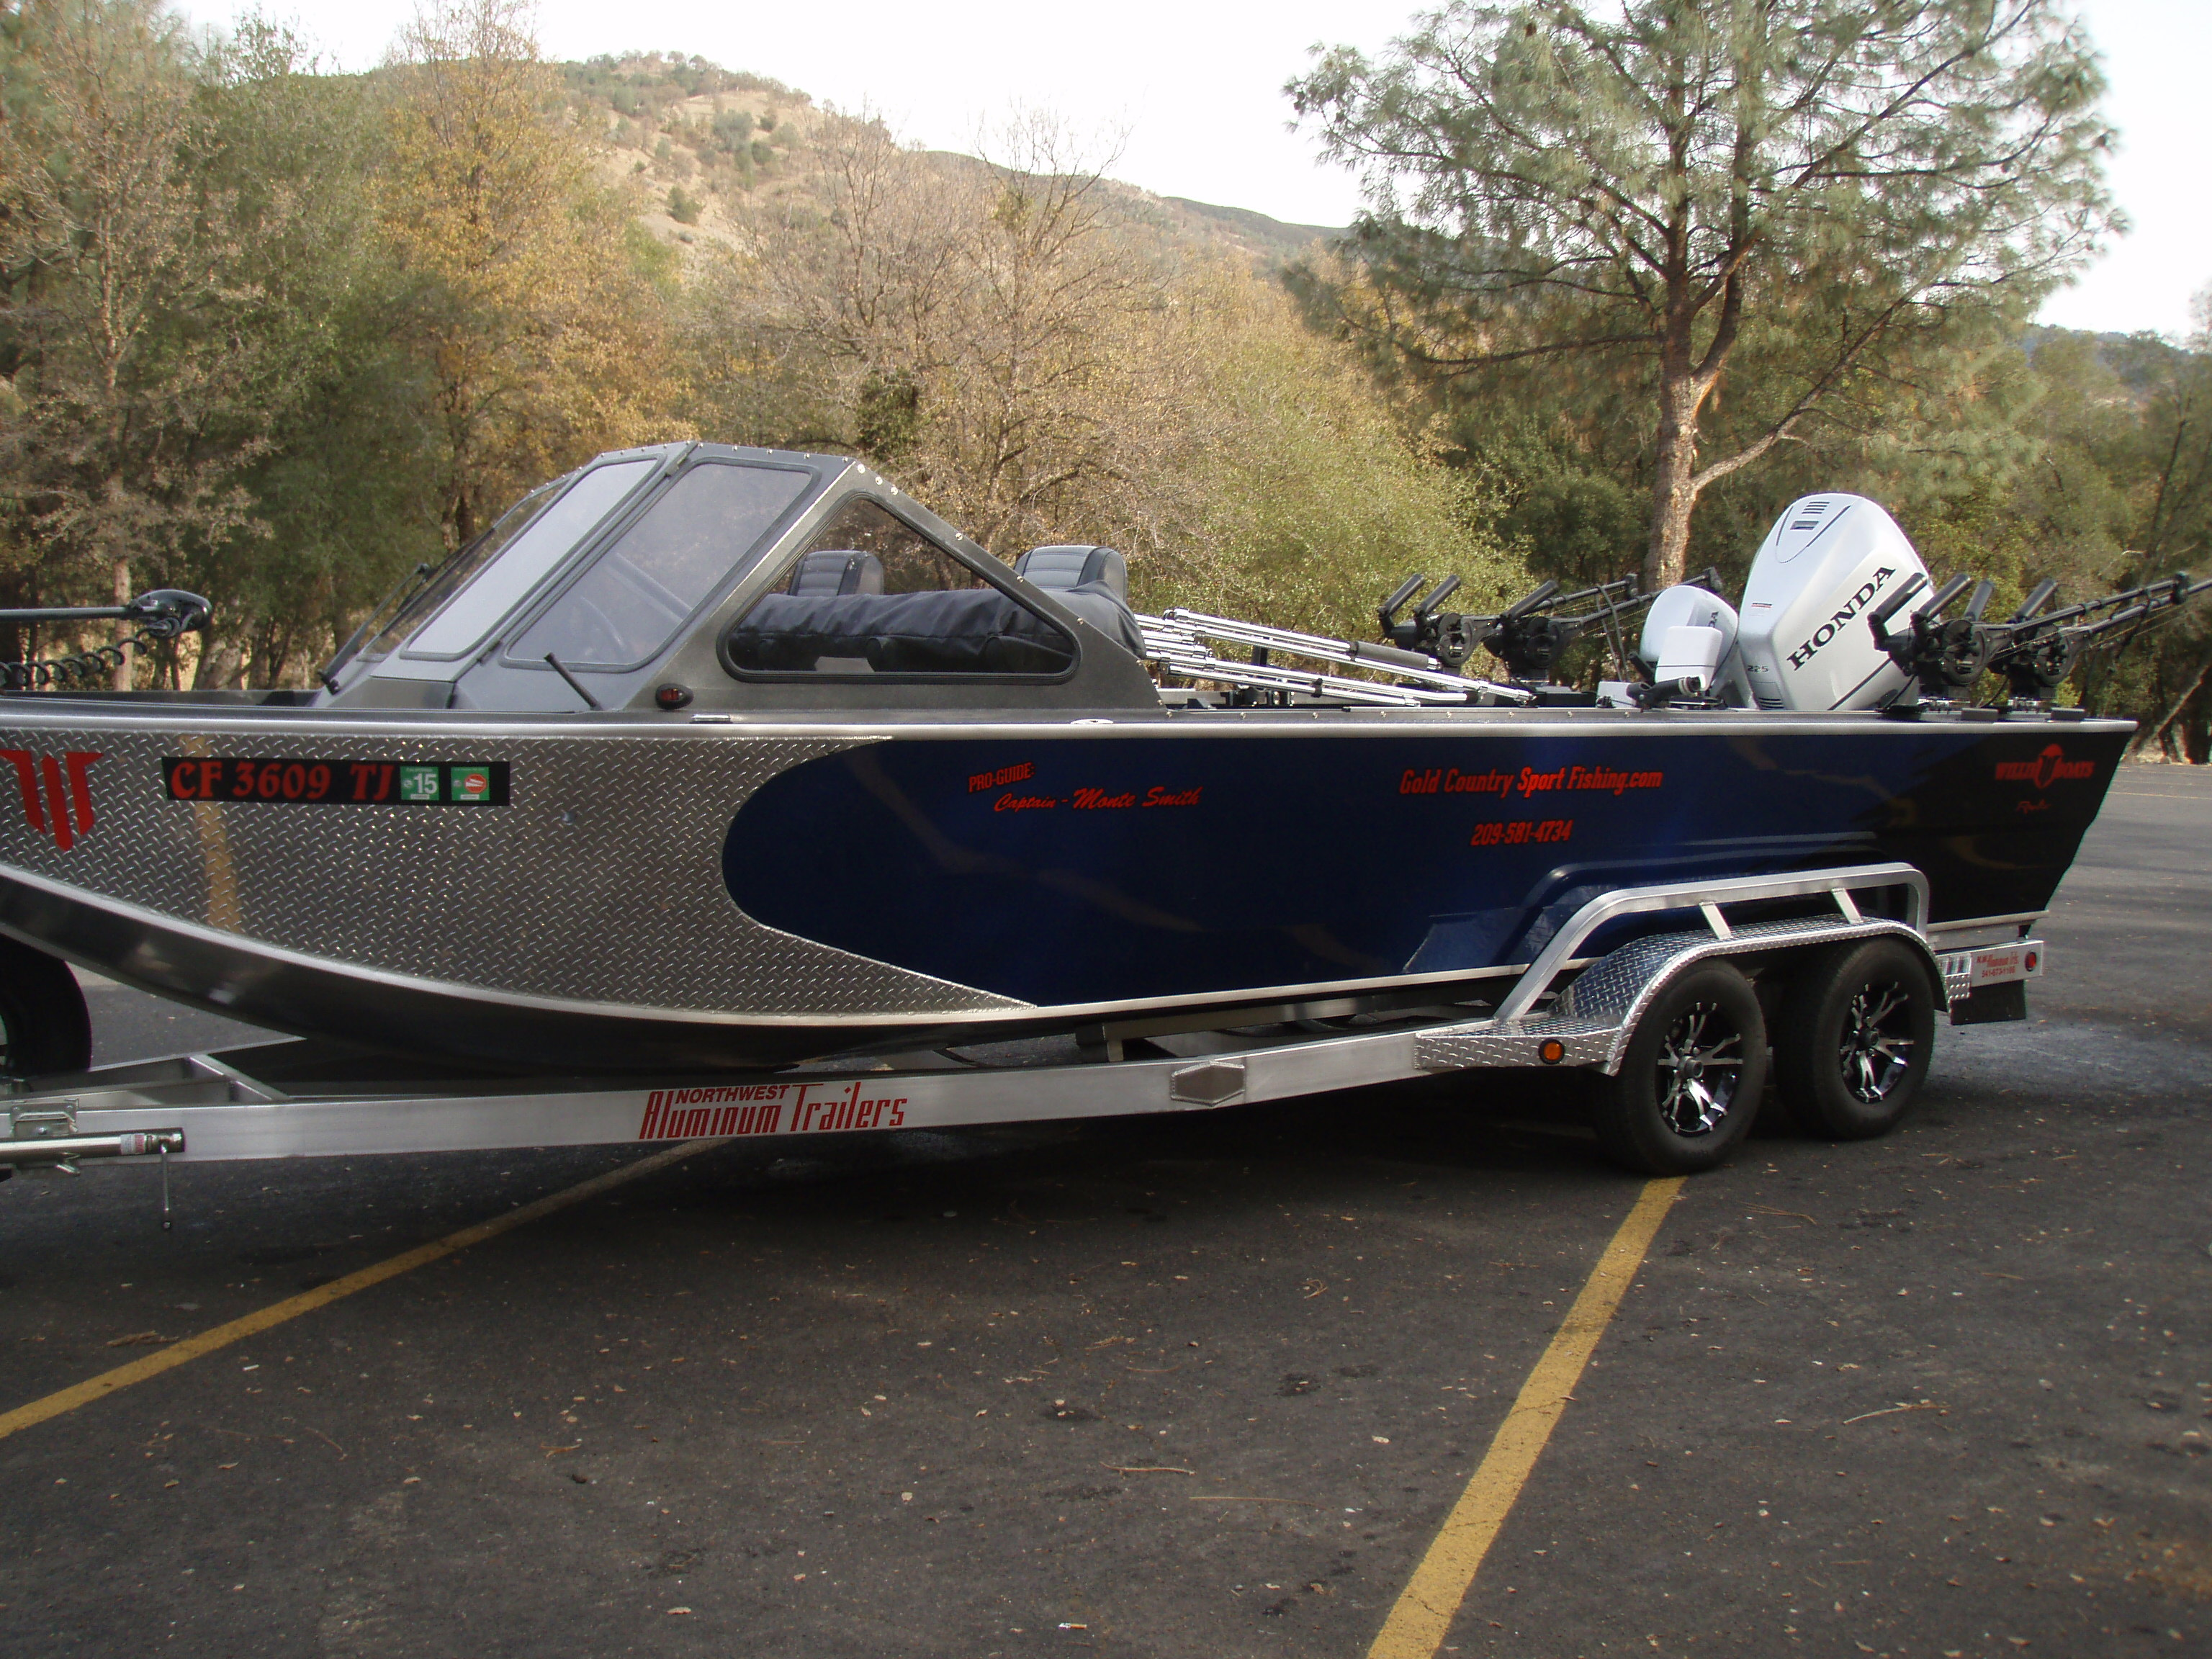 Willie Boats For Sale >> The 24 Foot Willie Boat Gold Country Sport Fishing